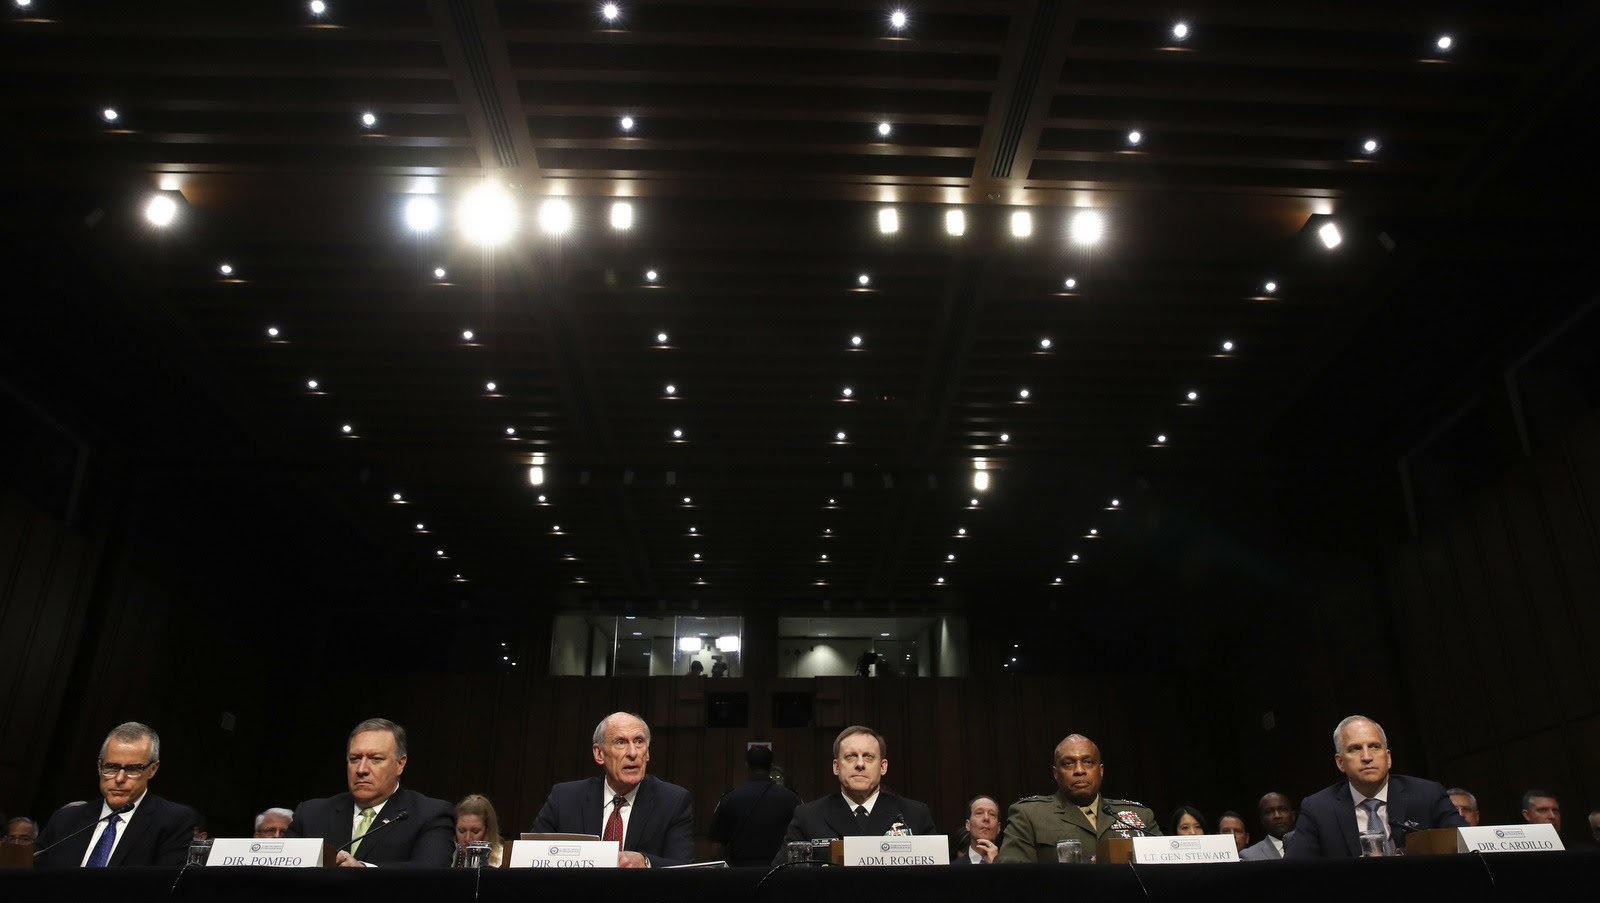 The Top brass of US intelligence agencies prepare to testify in Washington, May 11, 2017, before the Senate Intelligence Committee hearing on major threats facing the U.S. (AP/Jacquelyn Martin)